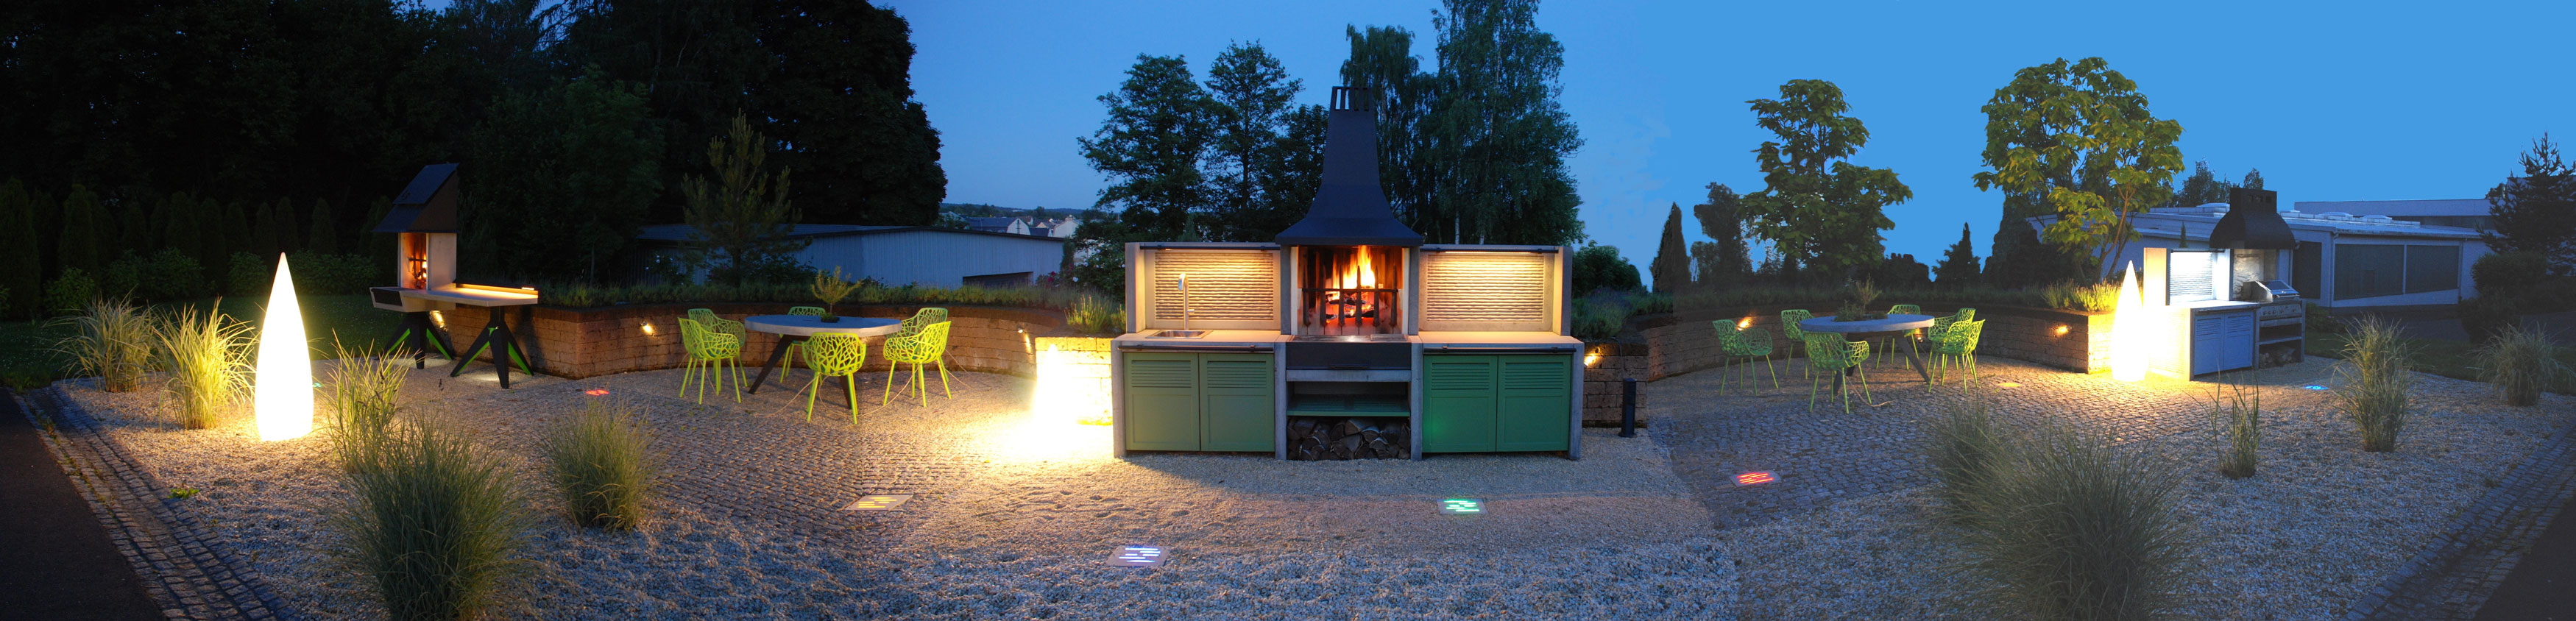 sunset at the outdoor kitchen showroom rehau